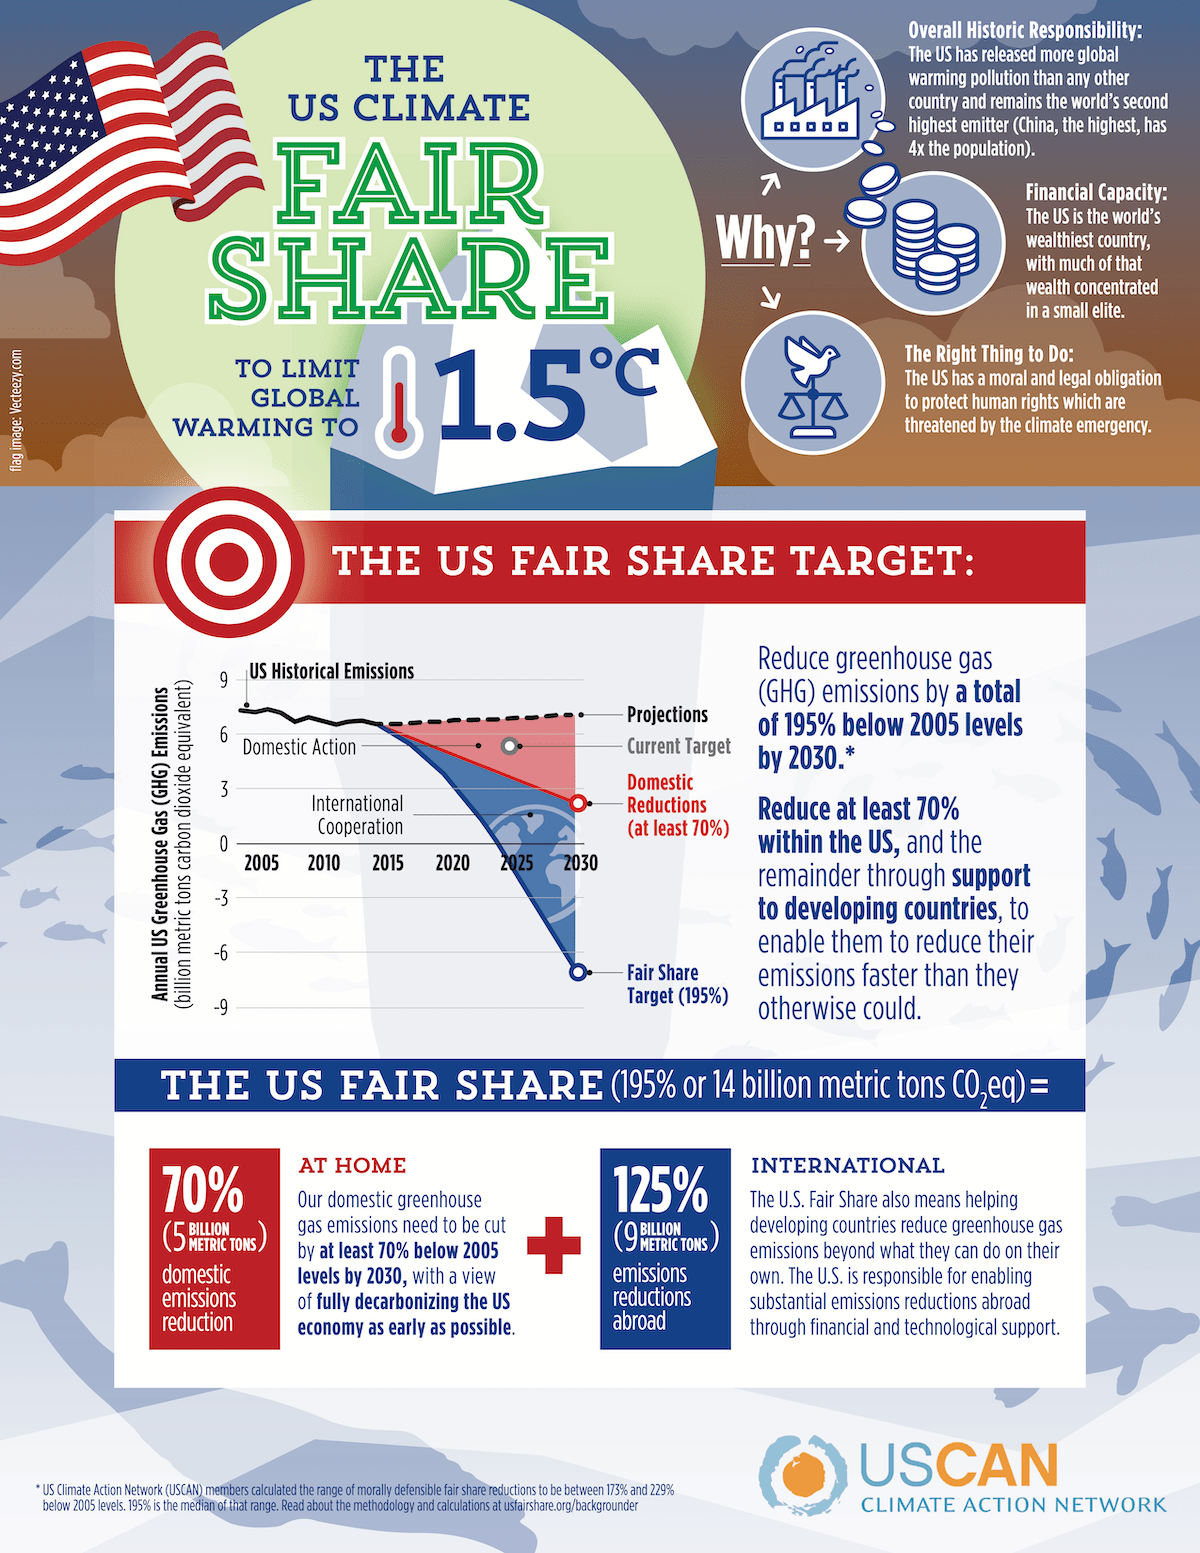 US Climate Fair Share Position Statement